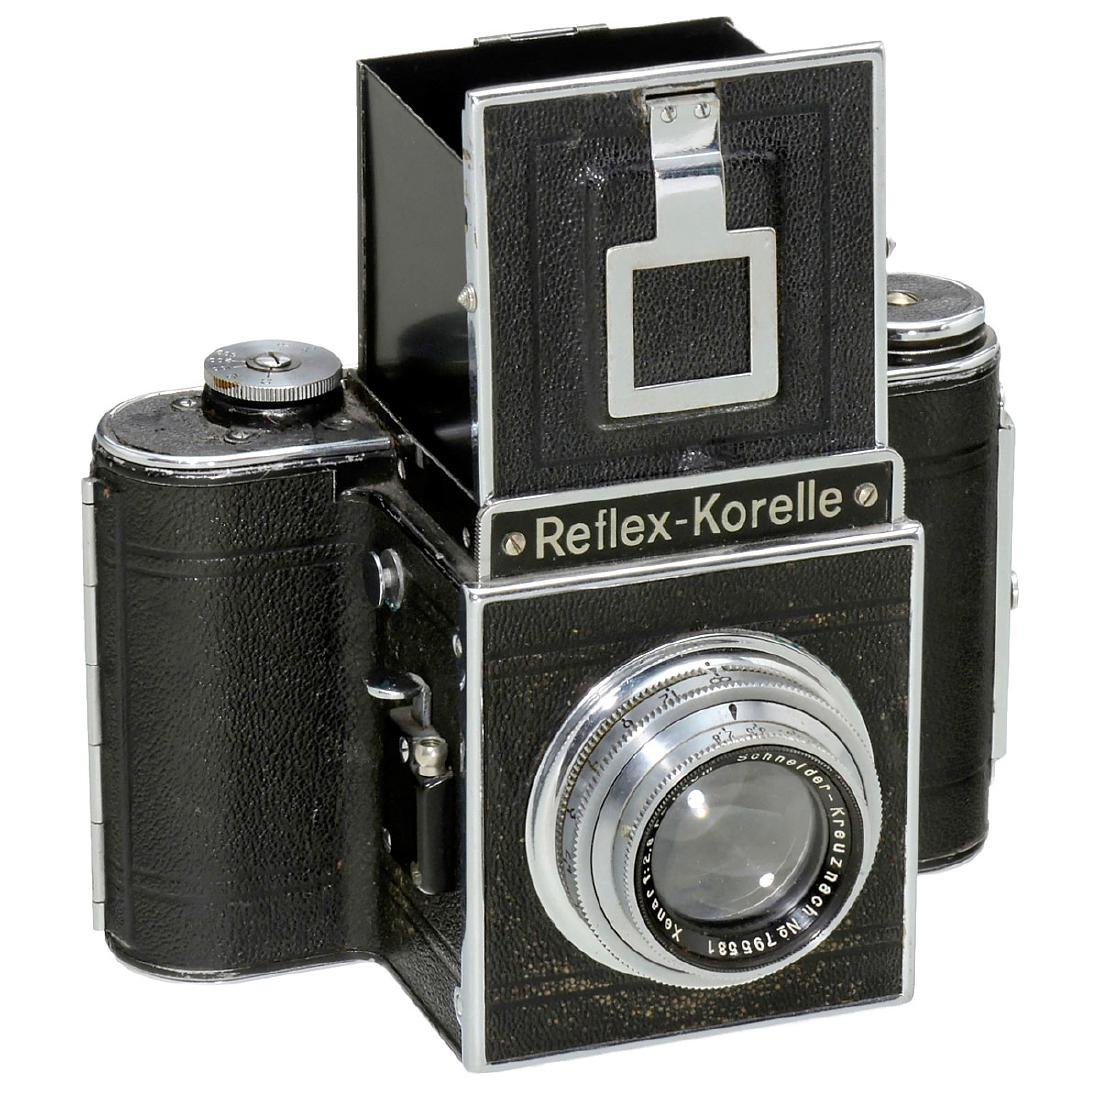 K.W. Reflex-Box and Reflex-Korelle - 2